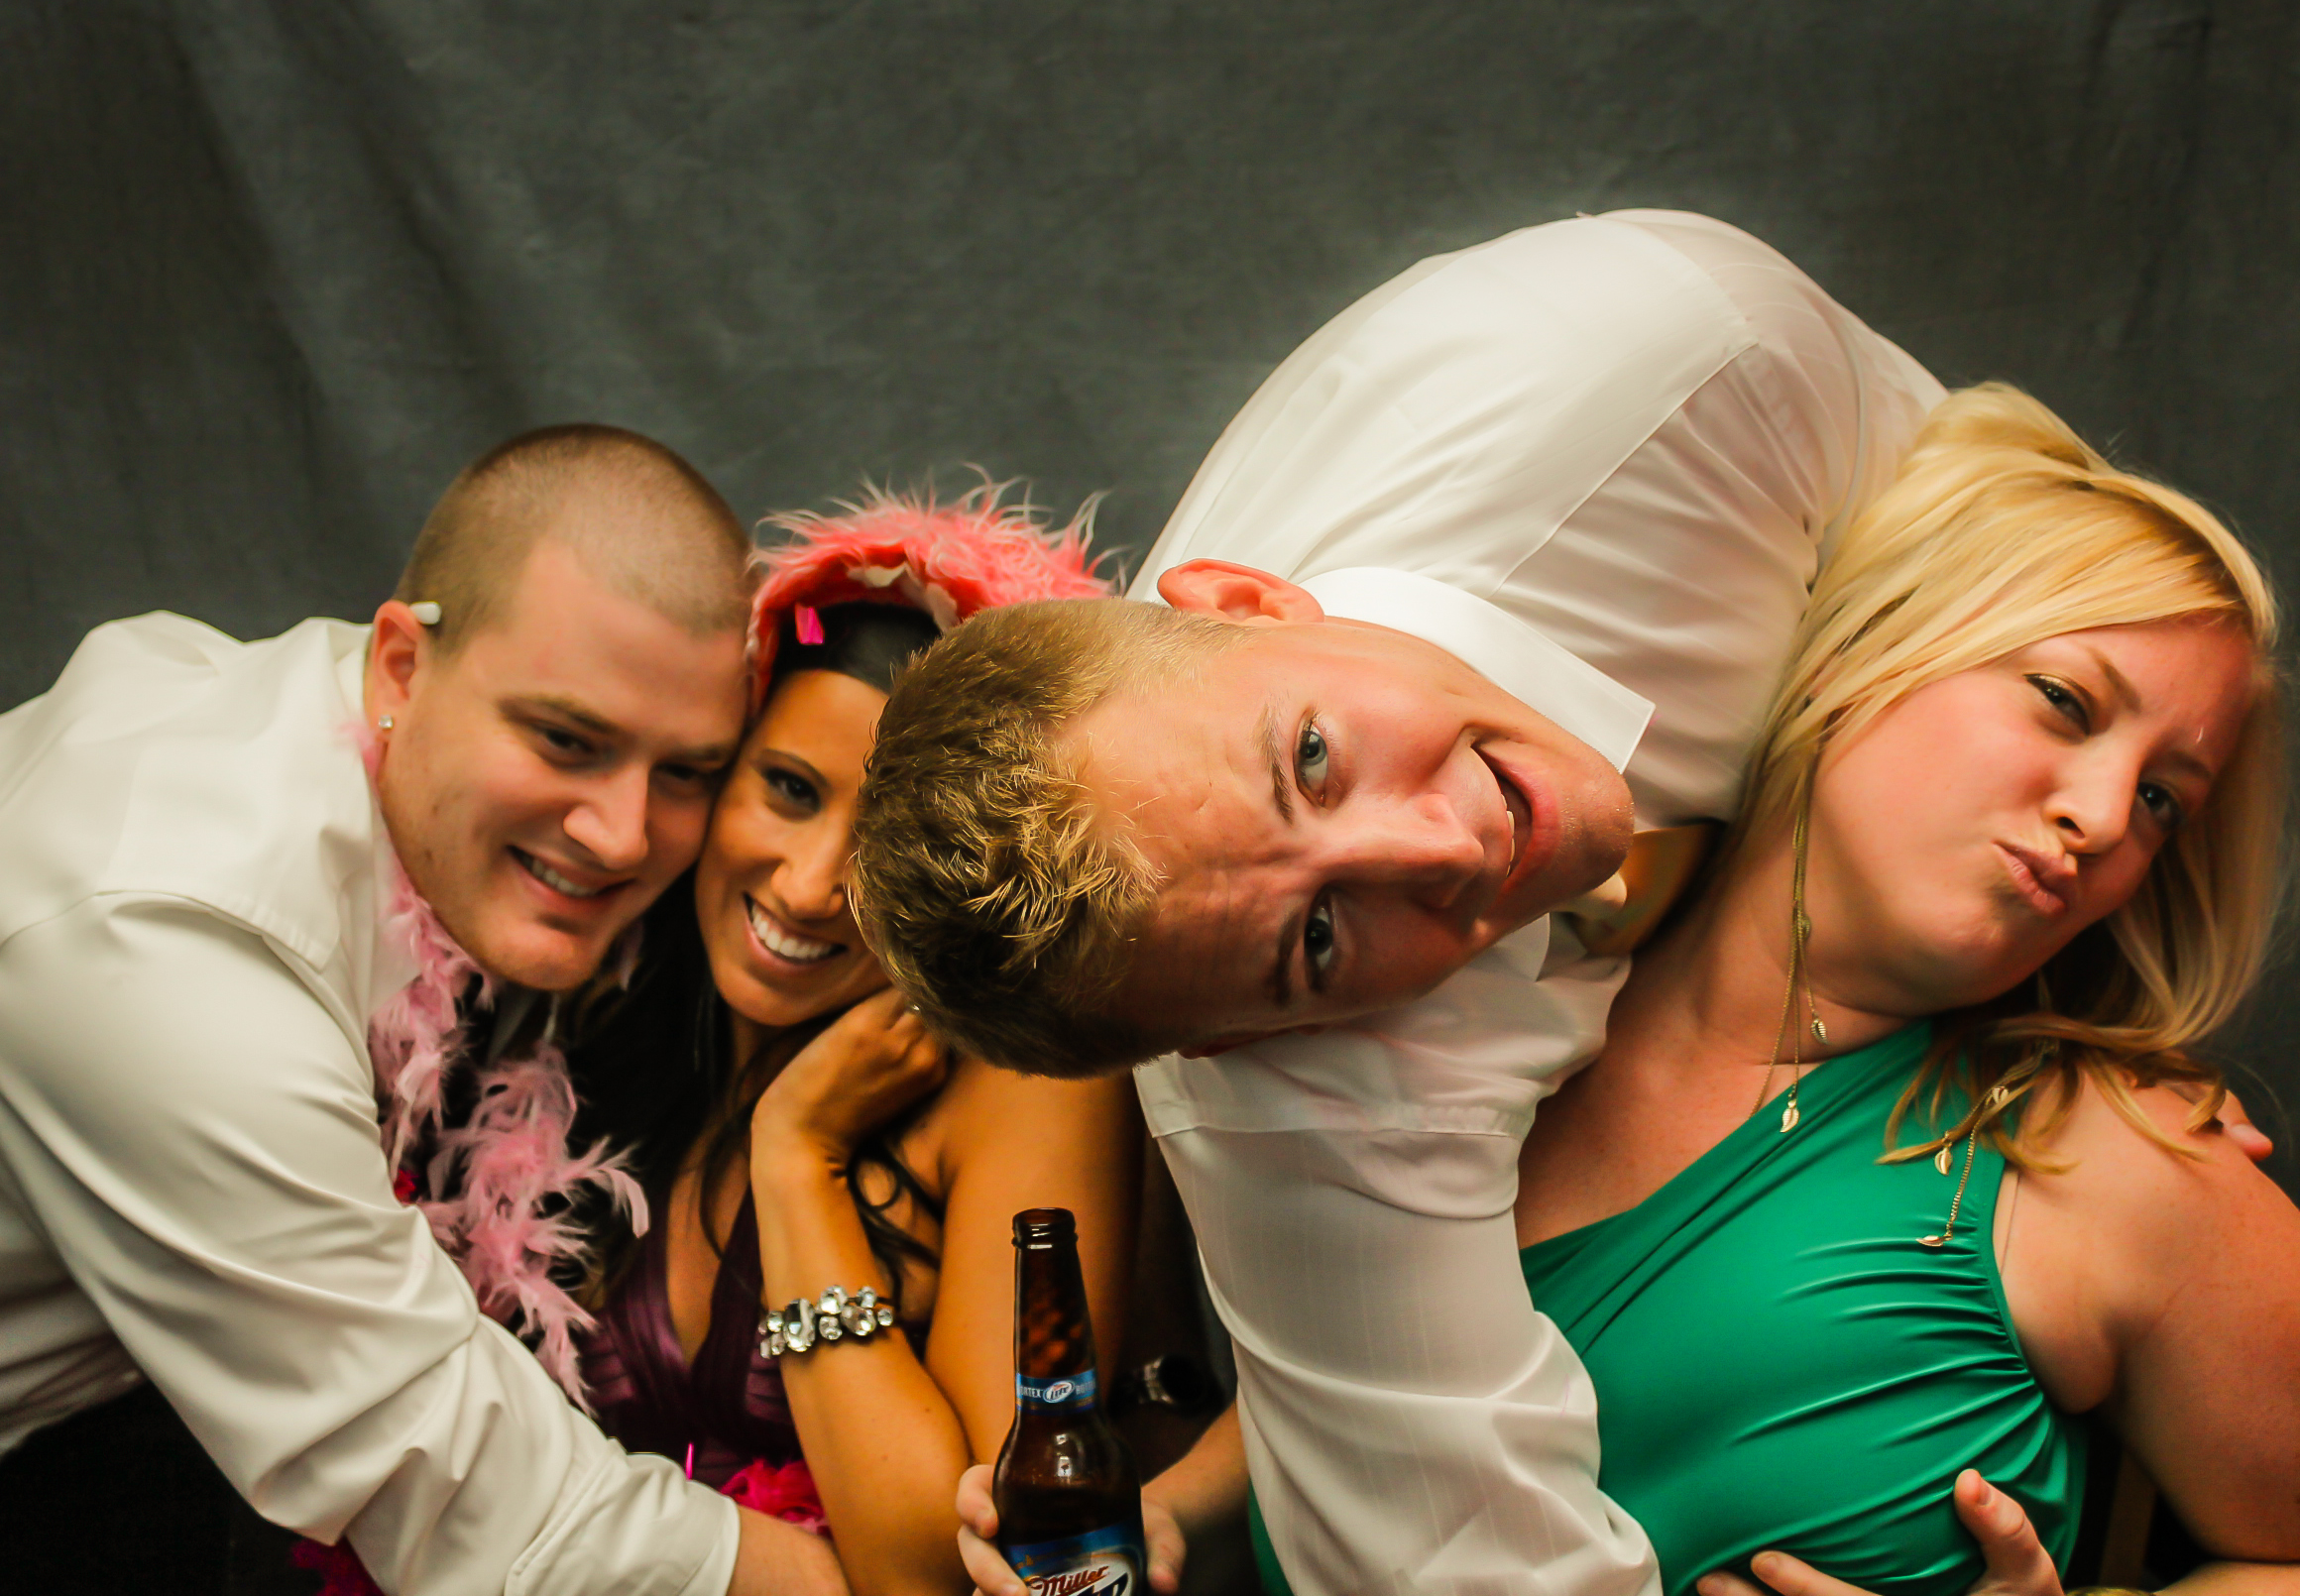 scott roth events top photo booth photos 2013.jpg